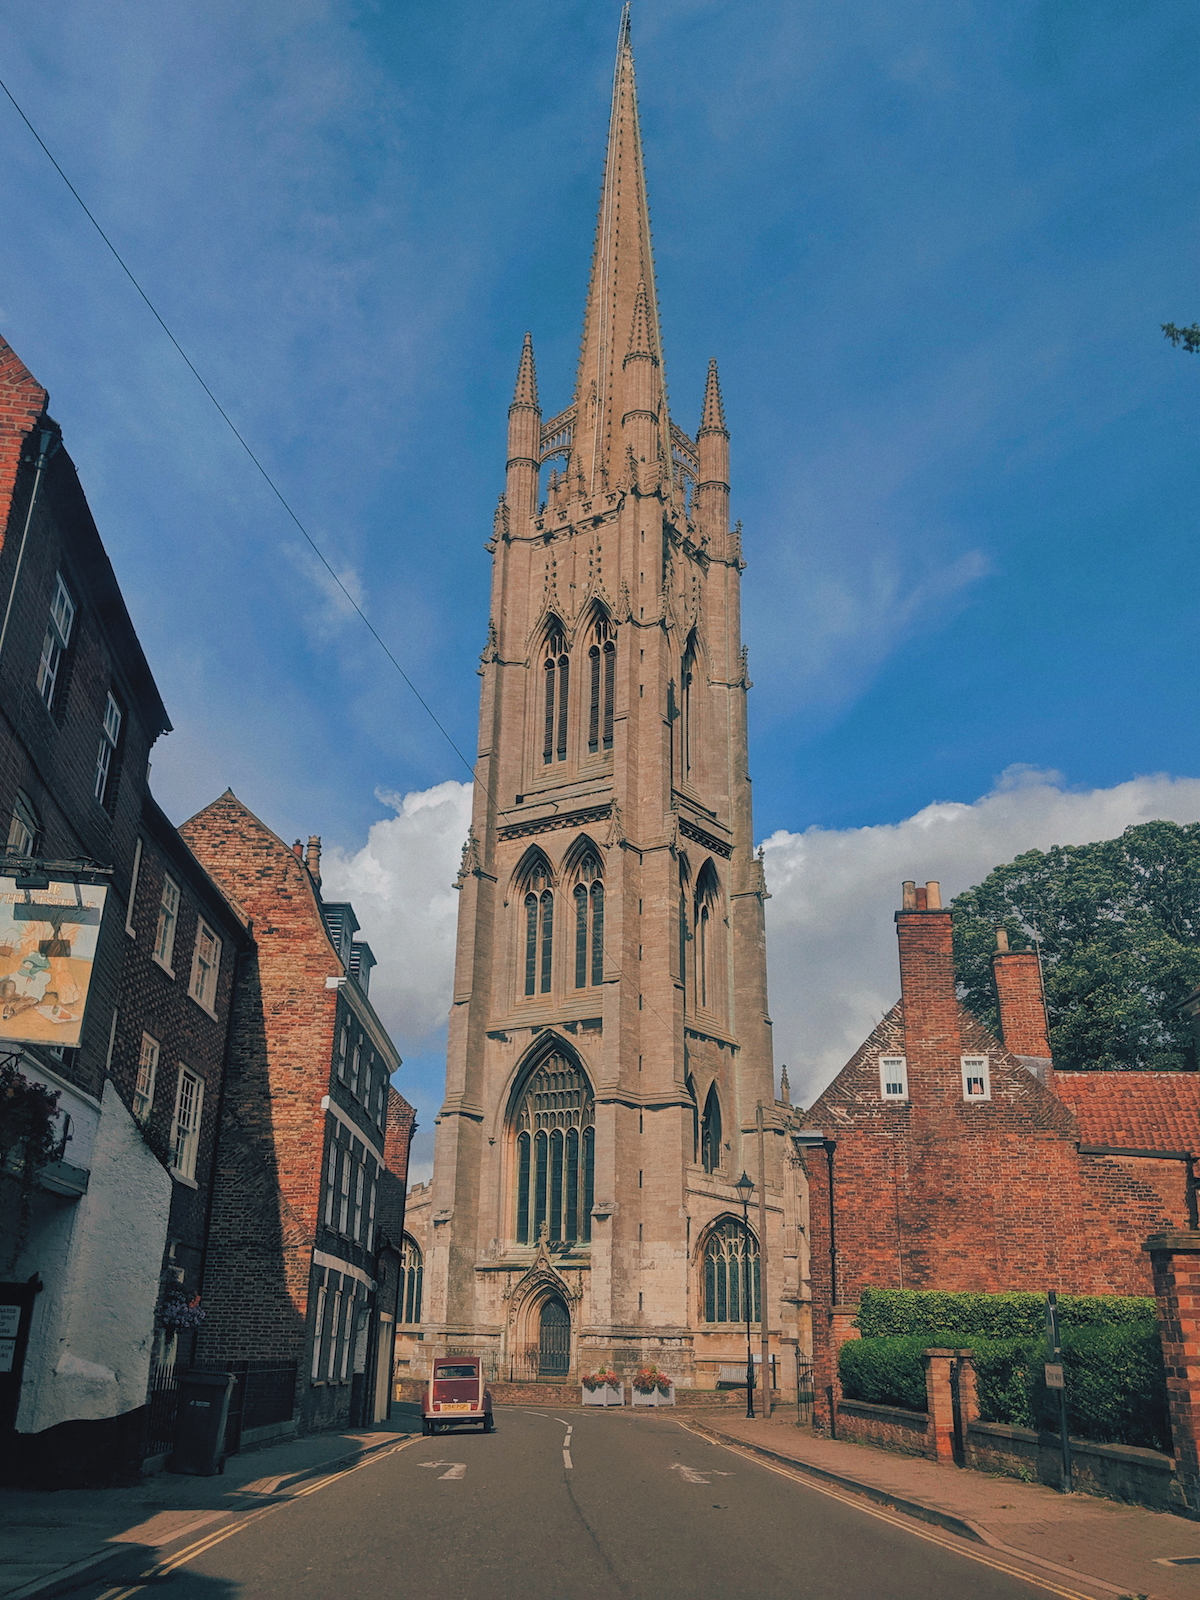 St. James' Church in Louth